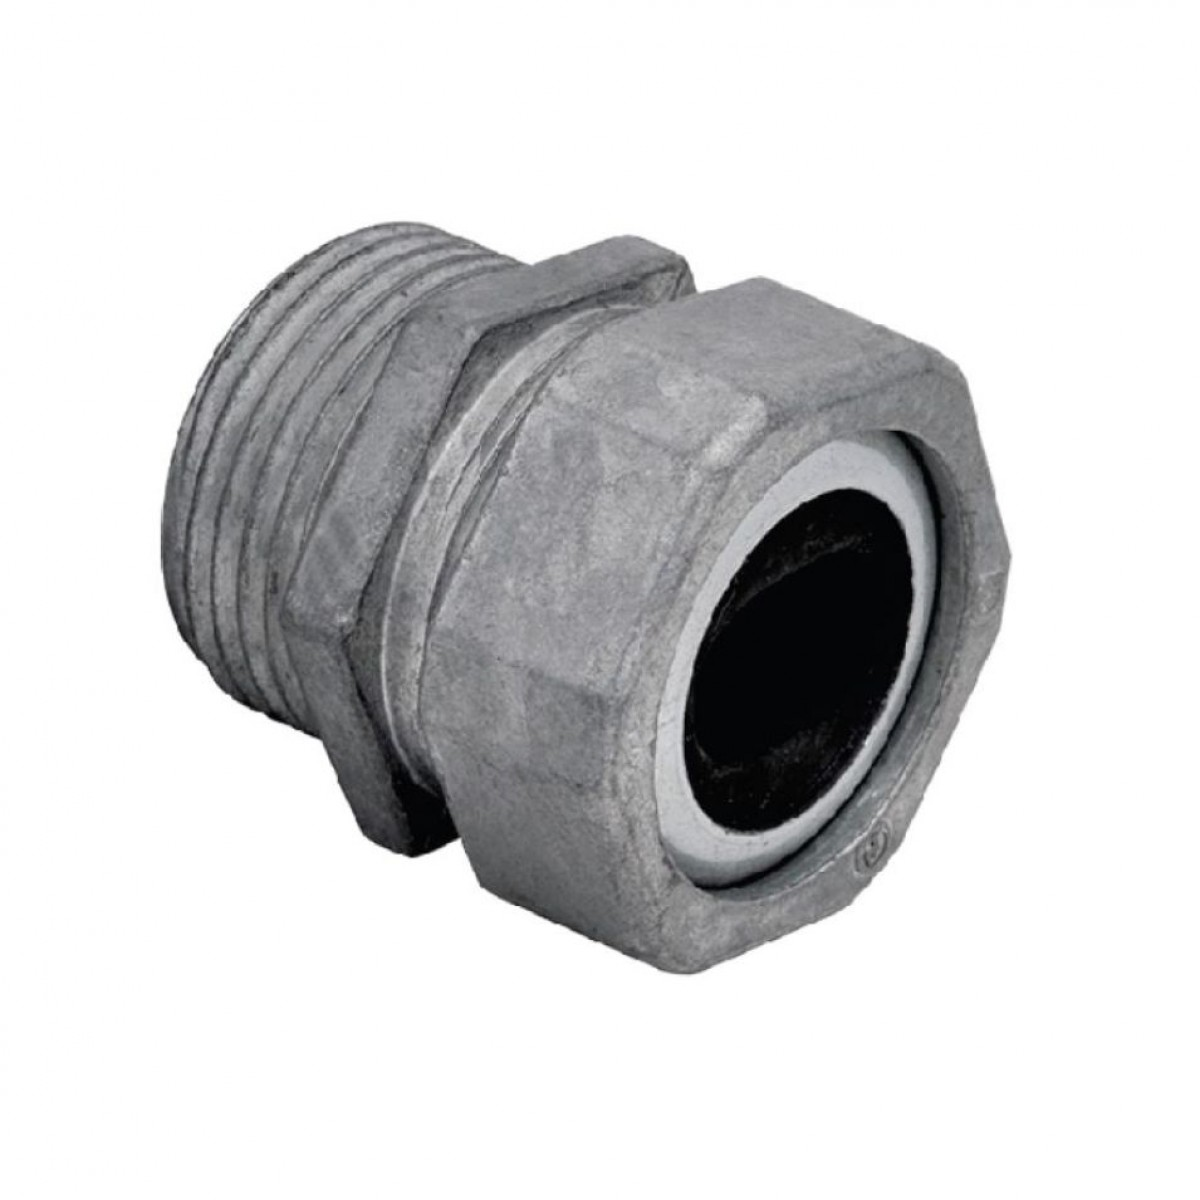 Zinc Watertight Service Entrance Cable Connectors Cable